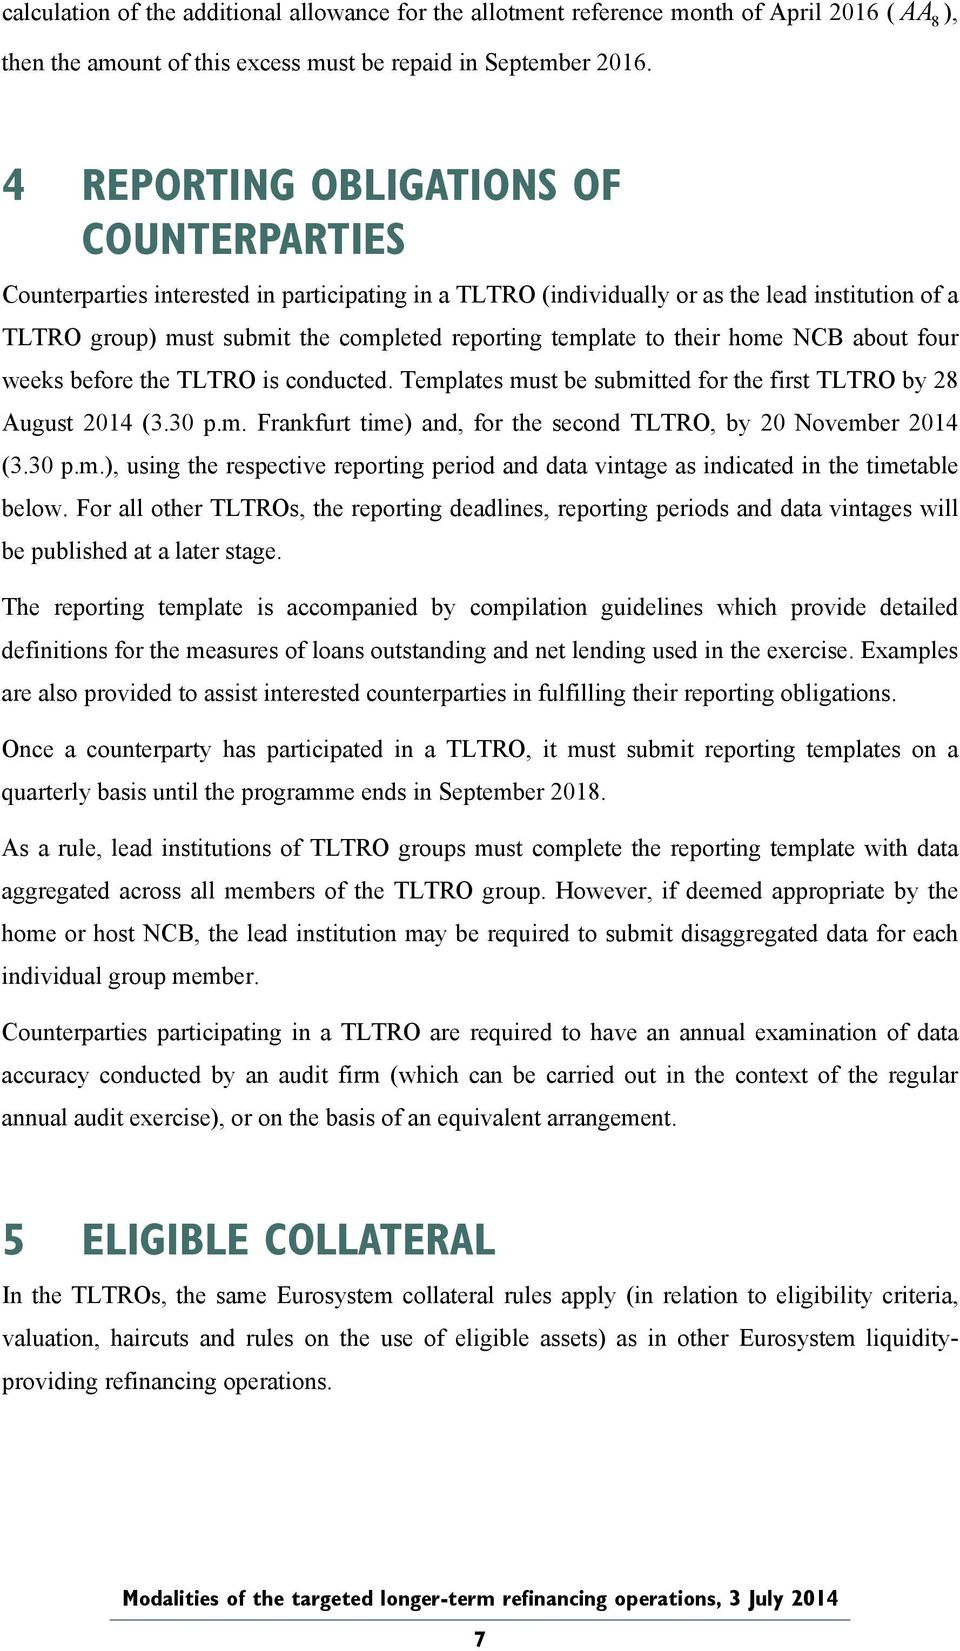 to their home NCB about four wees before the TLTRO is conducted. Templates must be submitted for the first TLTRO by 2 August 2014 (.0 p.m. Franfurt time) and, for the second TLTRO, by 20 November 2014 (.